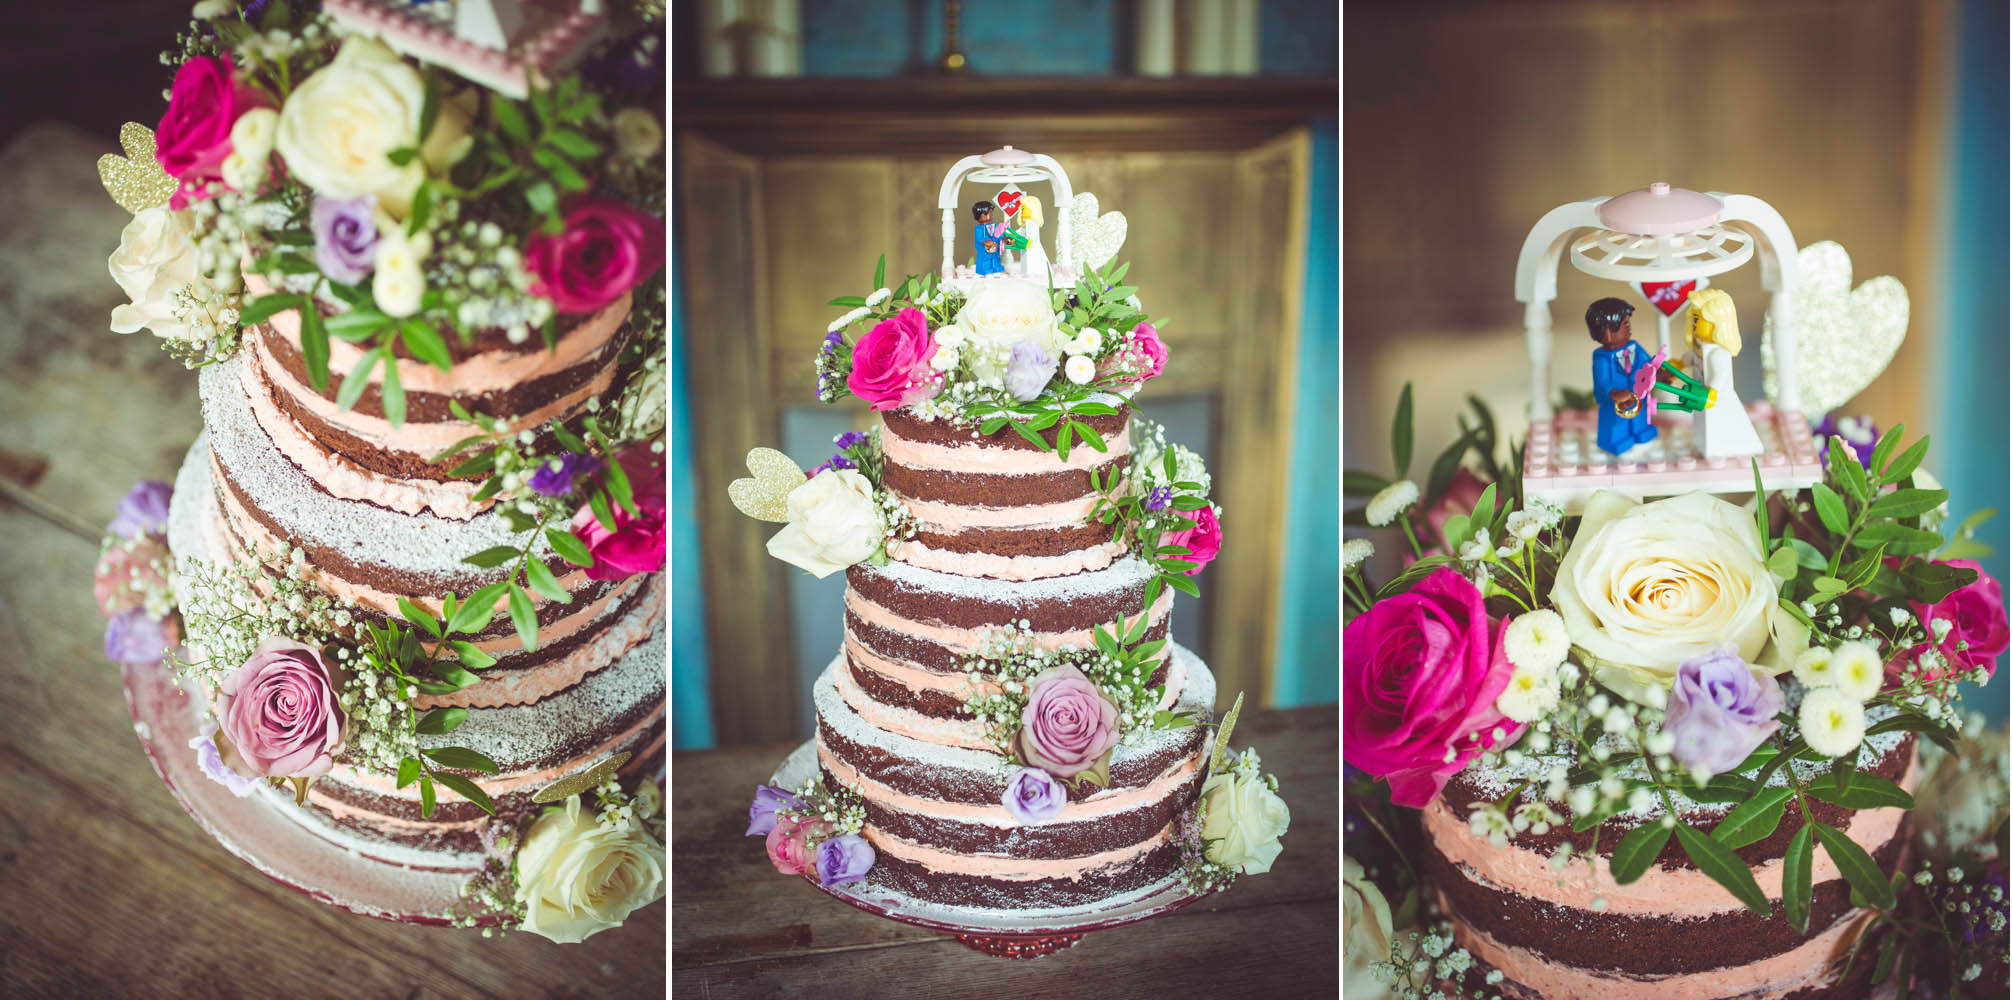 details of the wedding cake